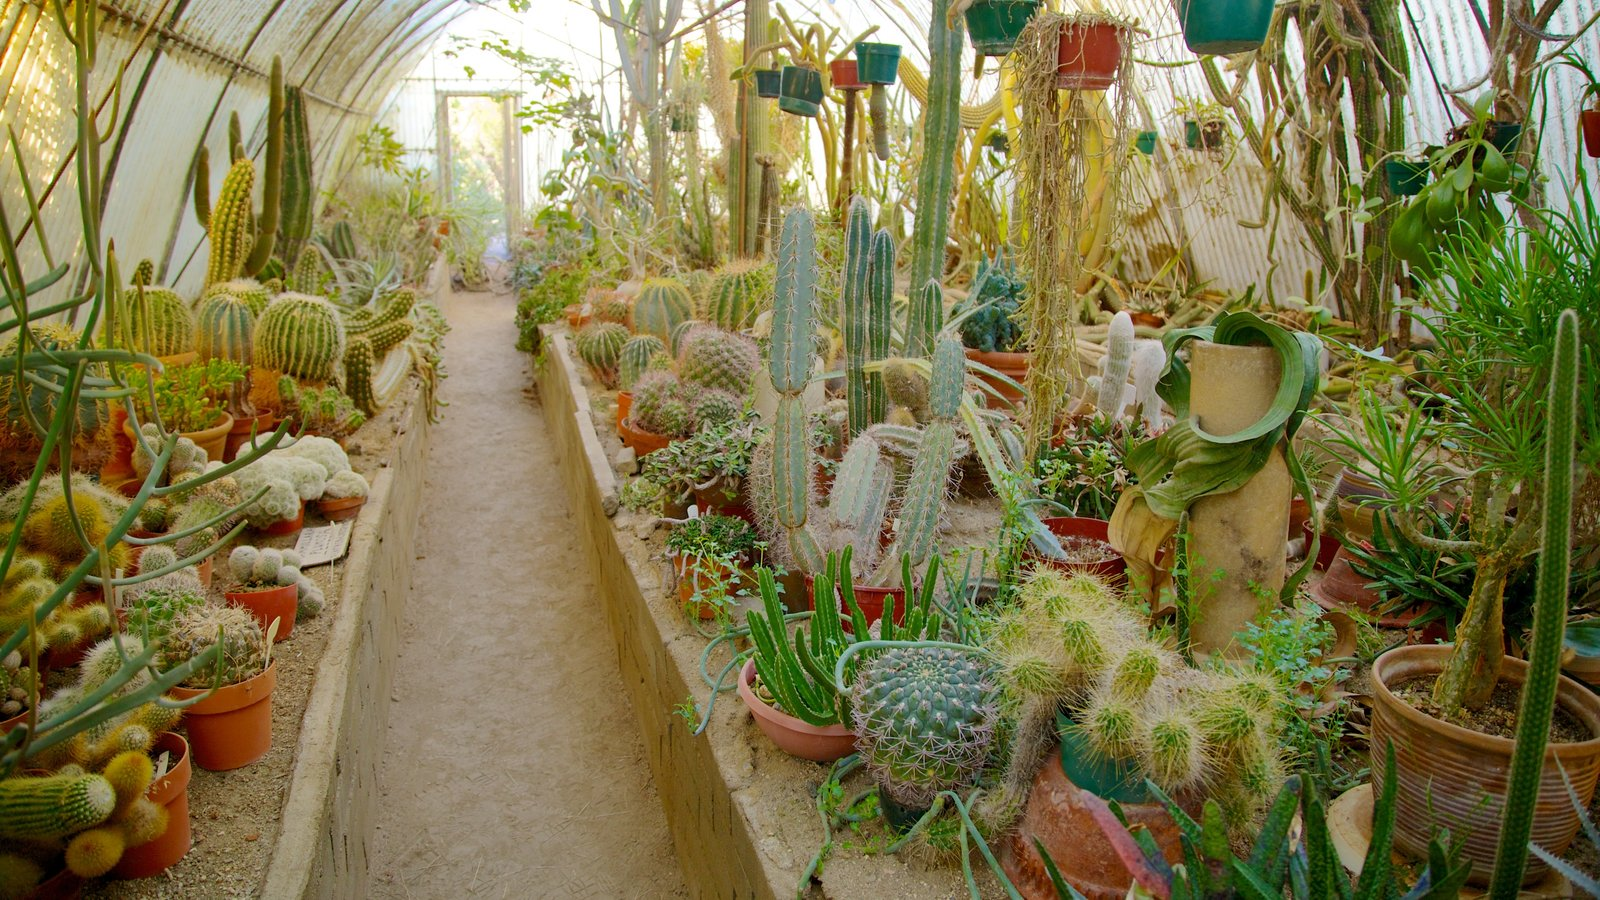 Flowers pictures view images of palm springs moorten botanical garden and cactarium showing flowers interior views and a park mightylinksfo